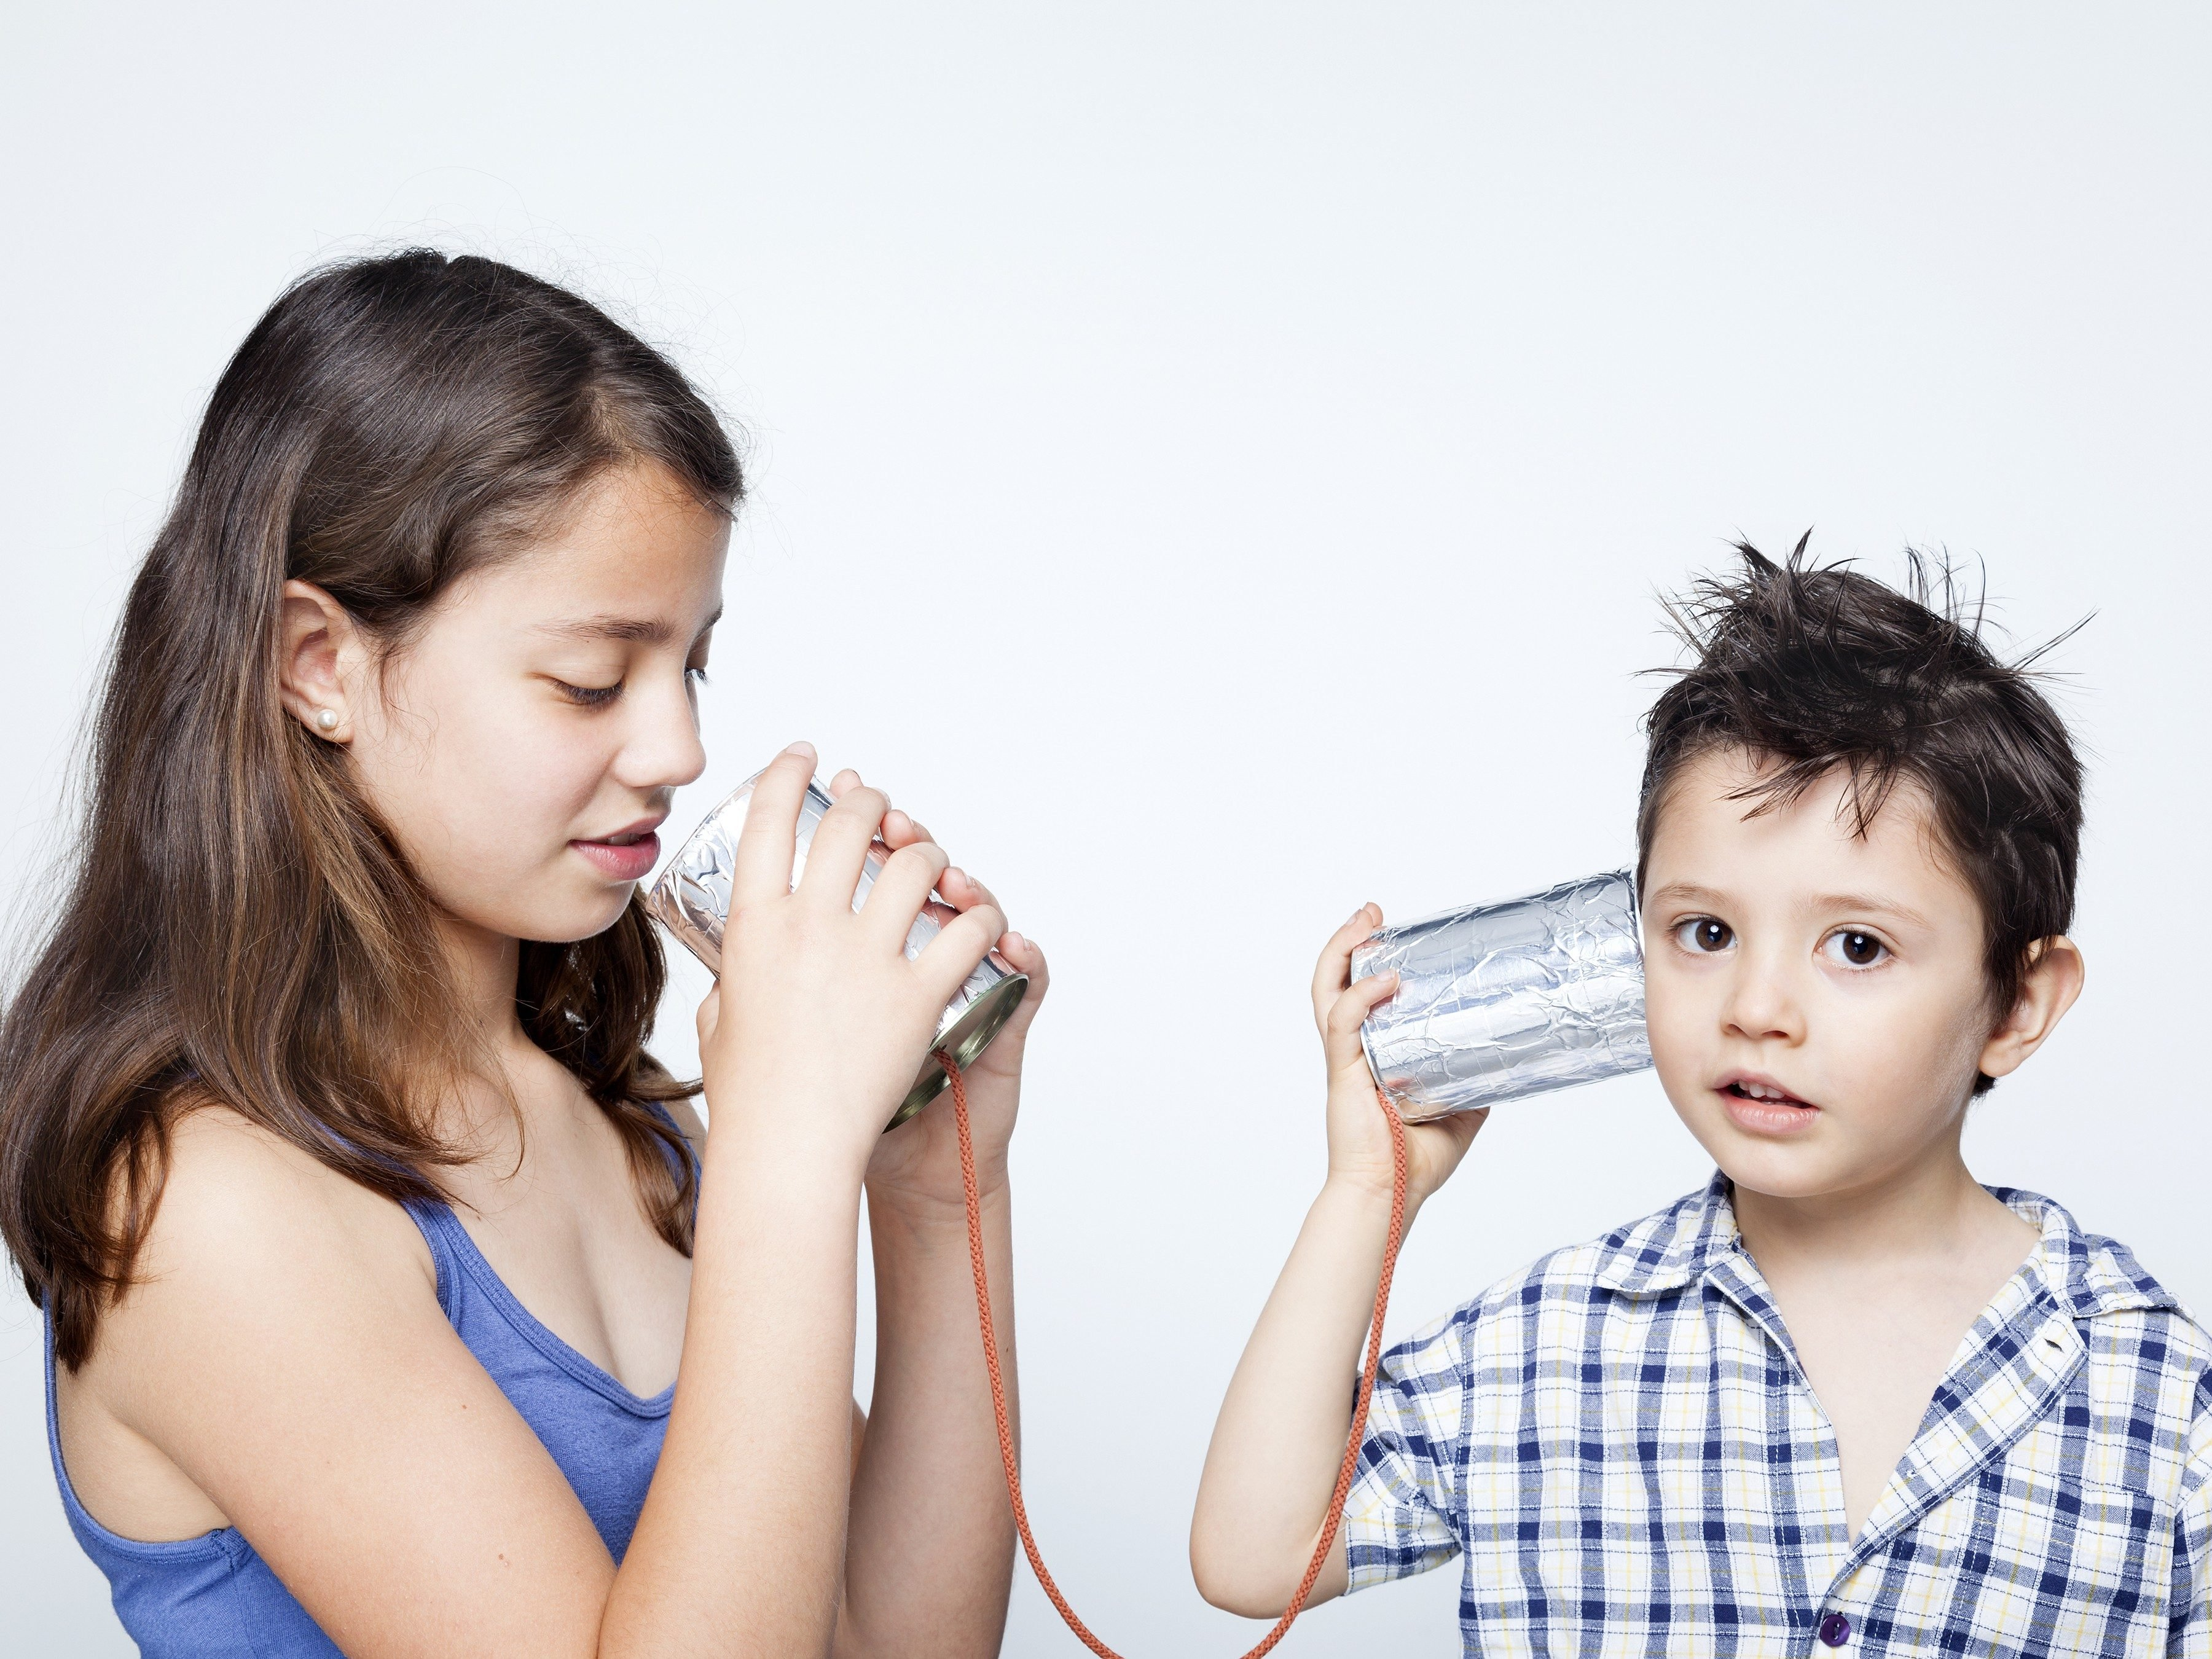 3. Turn a Funnel Into a Kids' Telephone